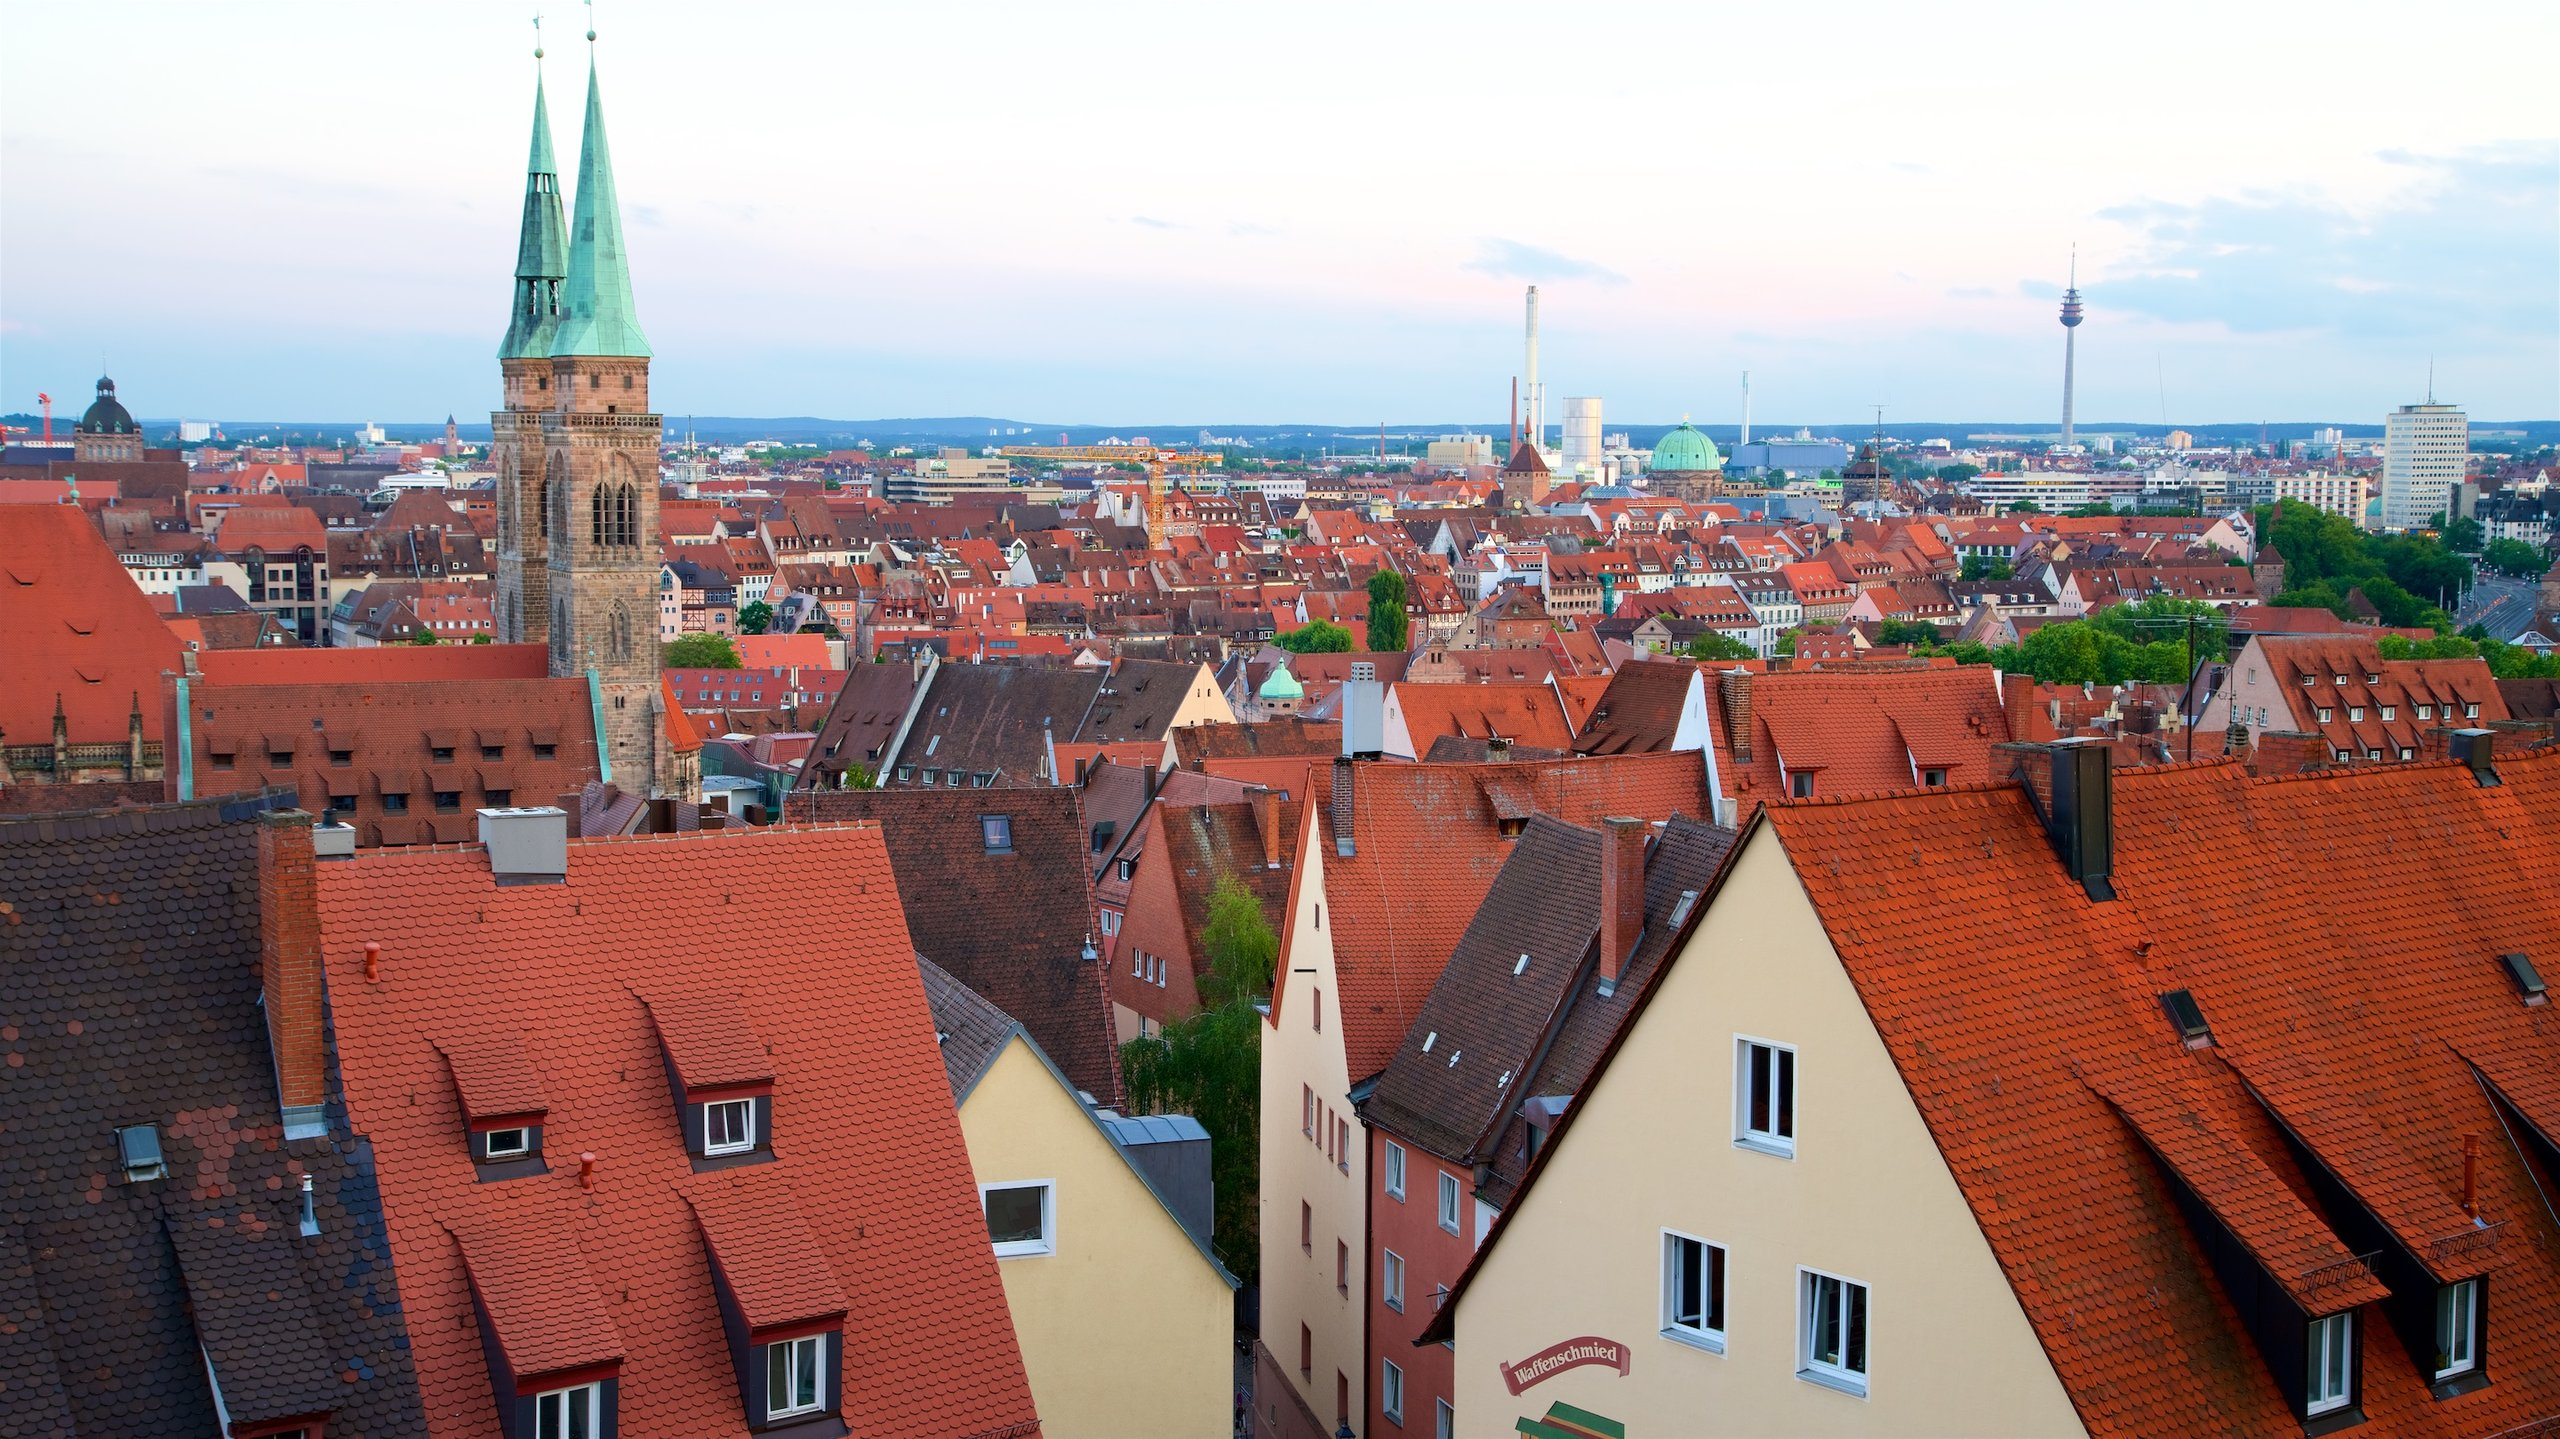 Explore within the sturdy walls of this ancient fortified palace and learn about the hilltop castle that has defined the Nuremberg cityscape for nearly 1,000 years.